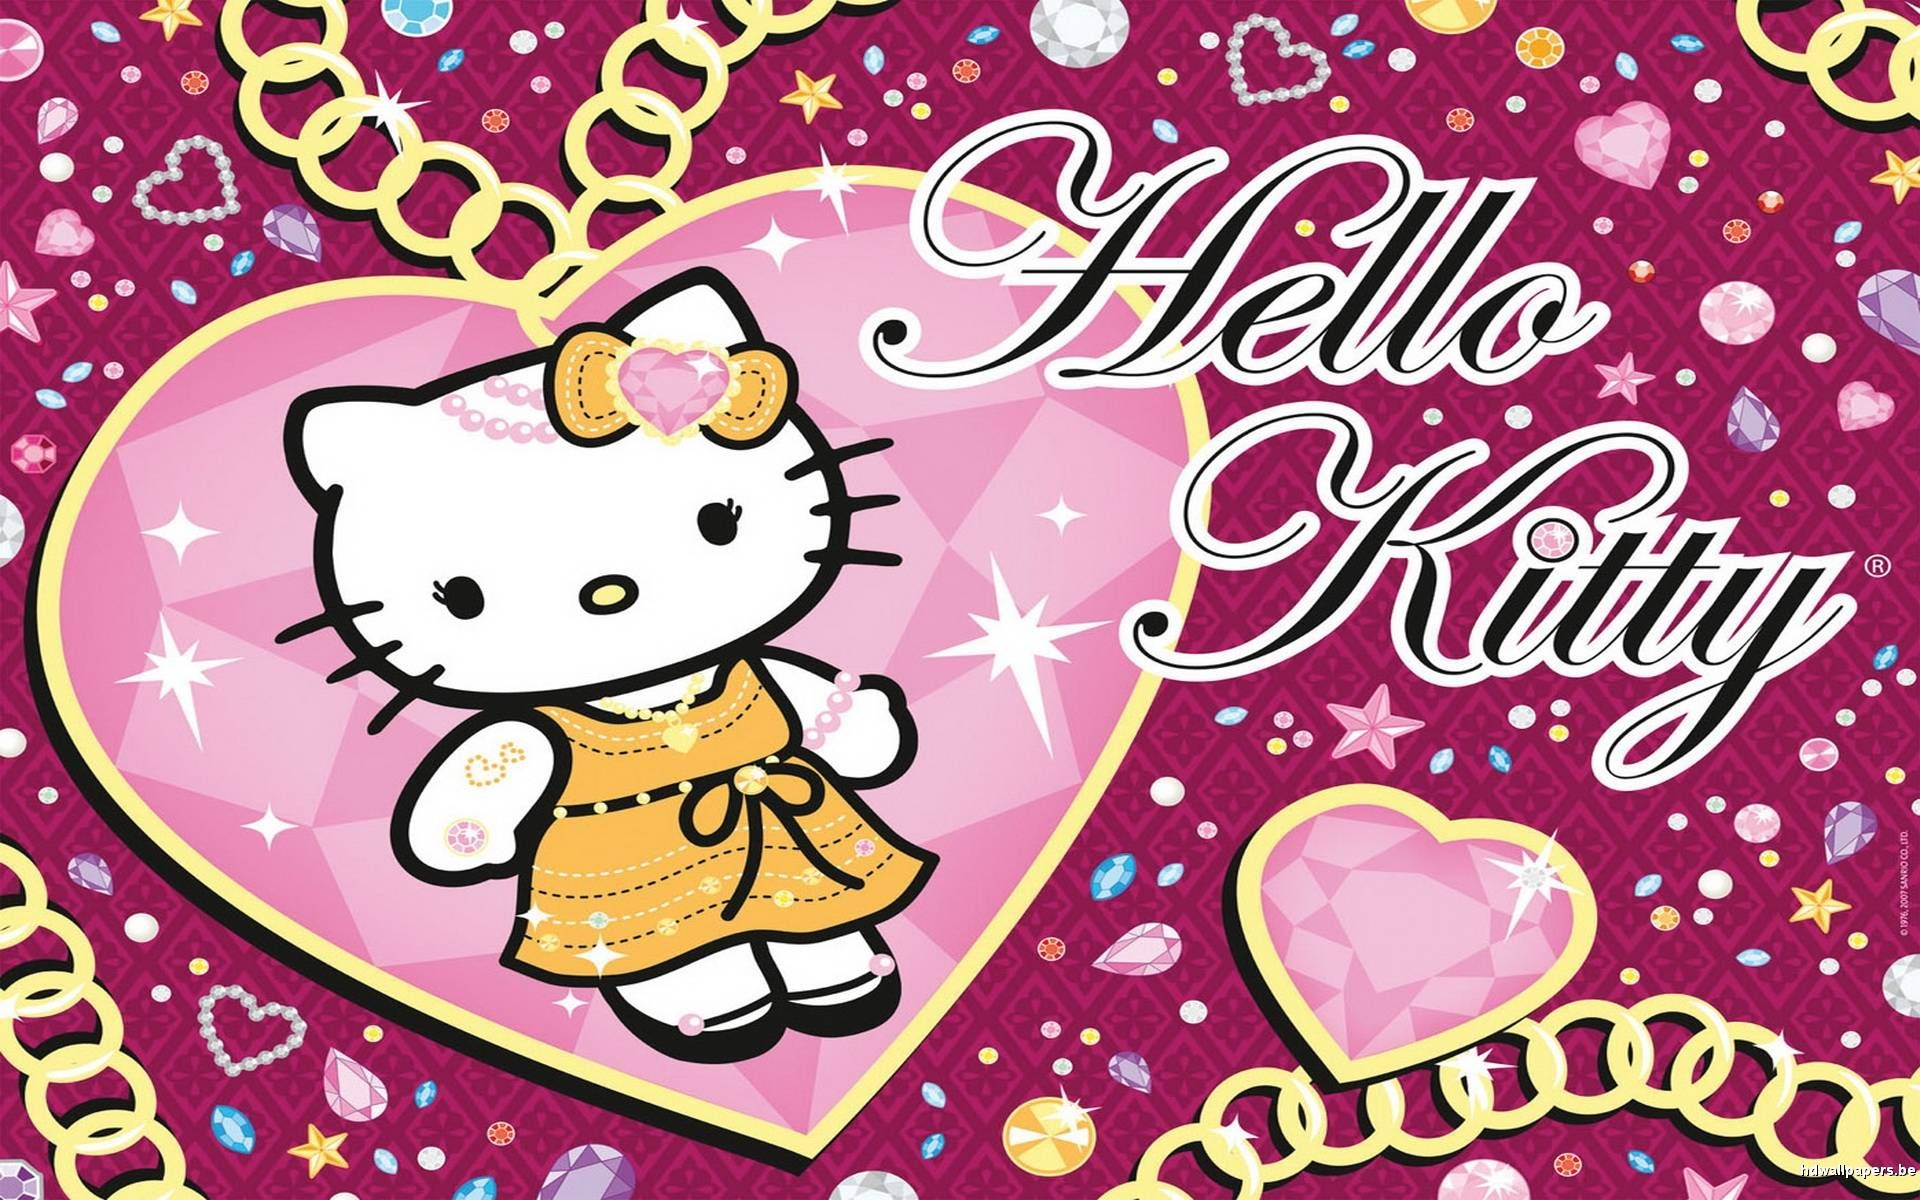 Good Wallpaper Hello Kitty Lenovo - d1b6fdb1cbfc13208e1f06717e04b304  Picture_94434.jpg